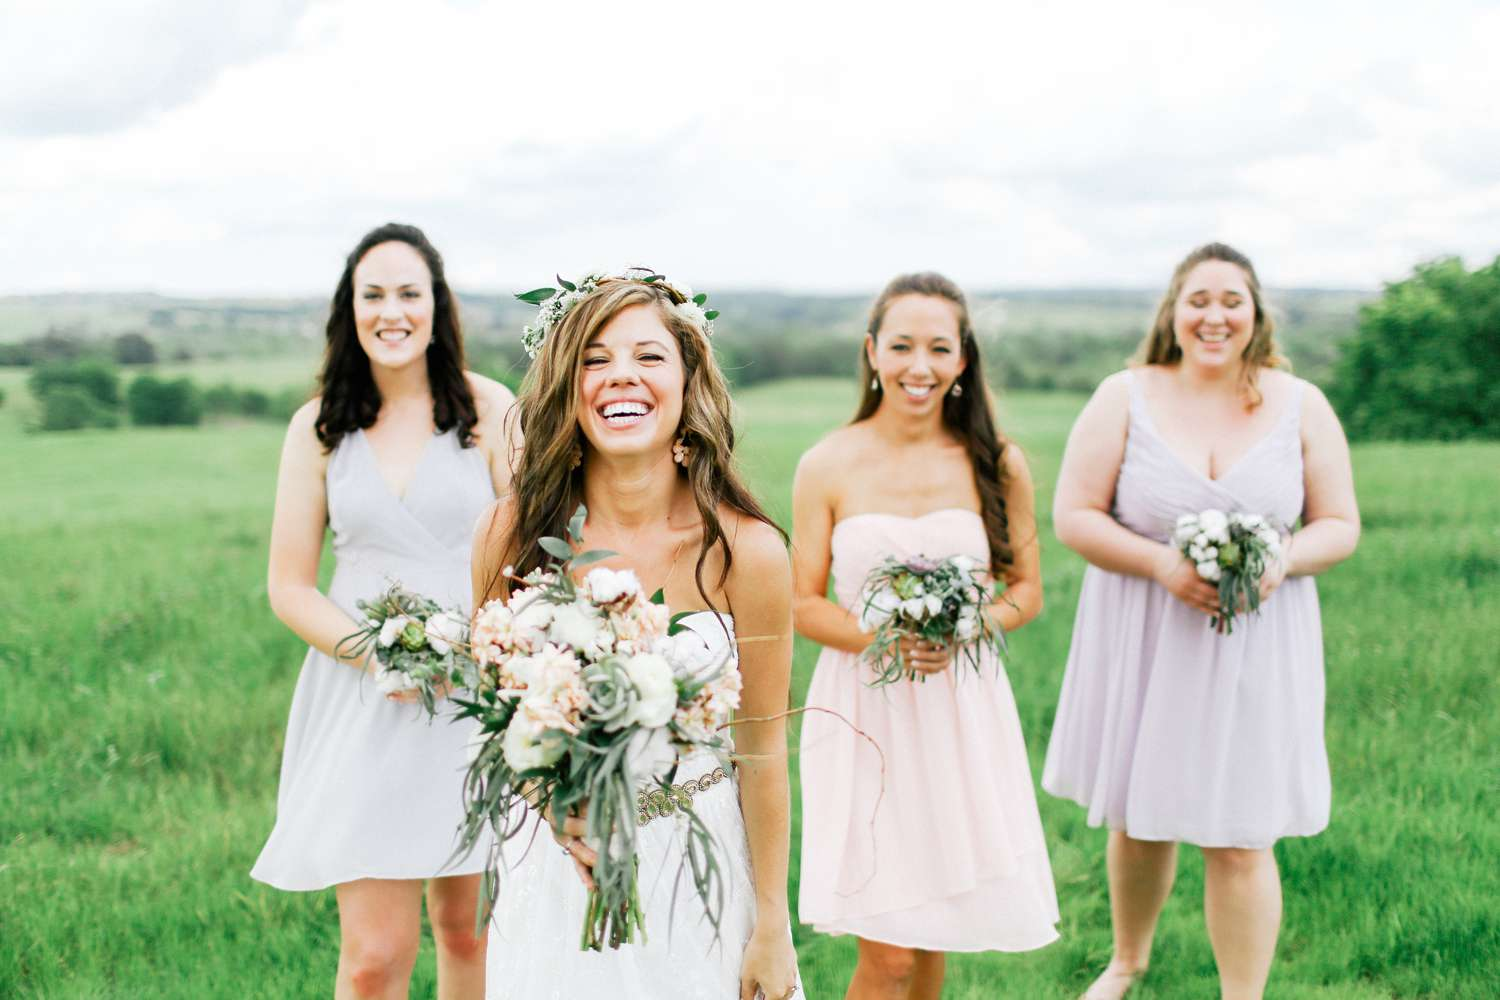 Mismatched Bridesmaid Dresses 10 Tips To Pull It Off Beautifully